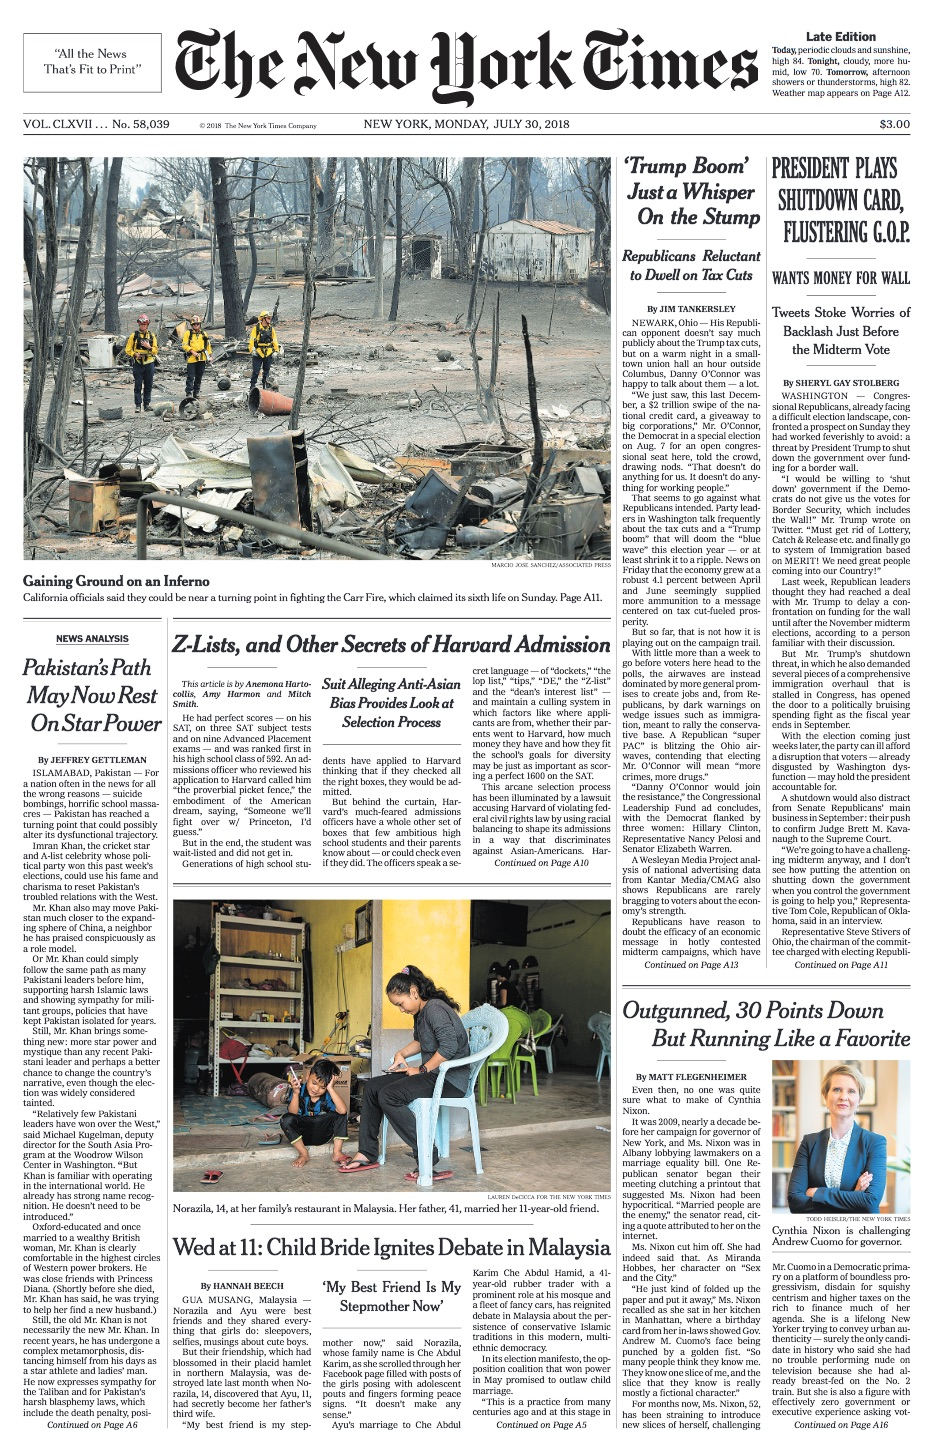 NYT_FrontPage_073018.jpg